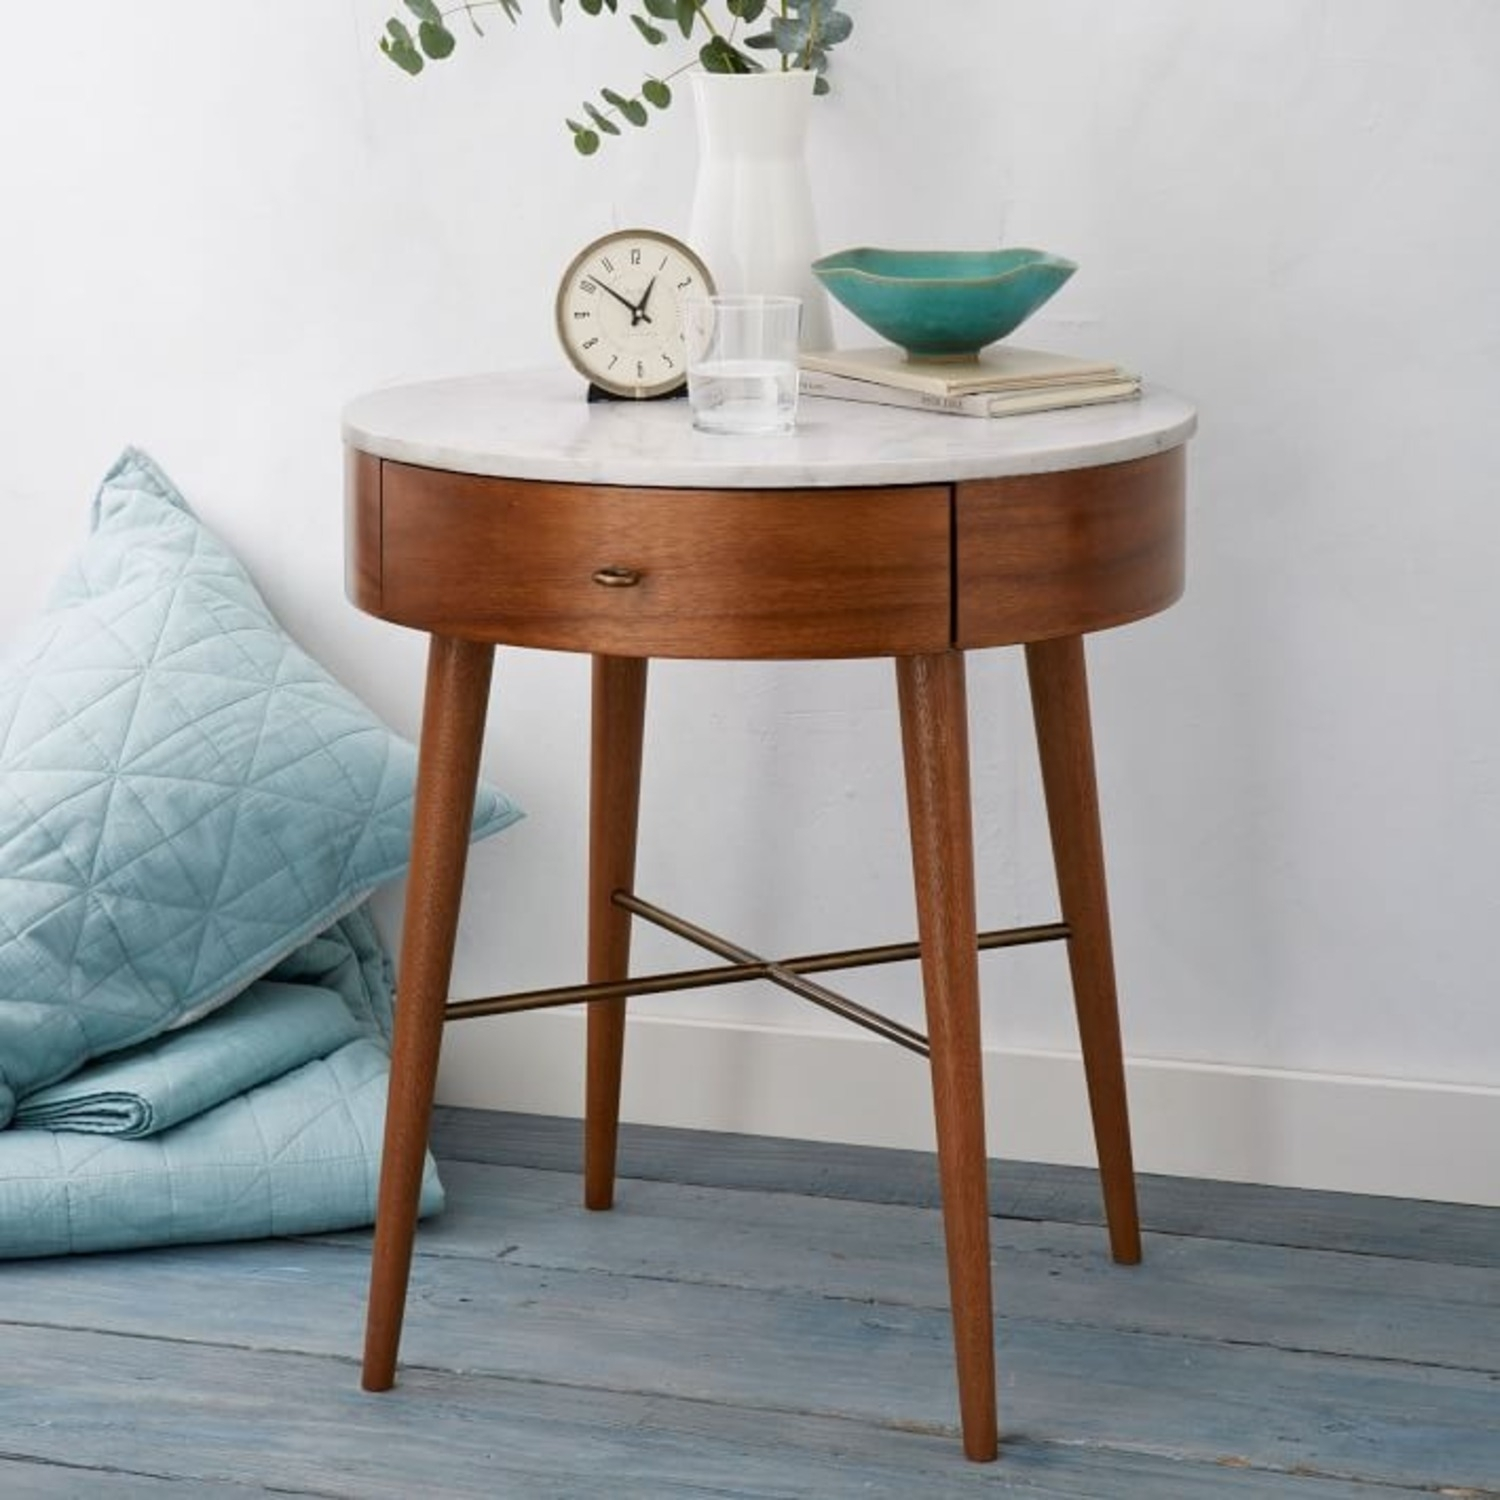 Round Night Stand Ideas On Foter